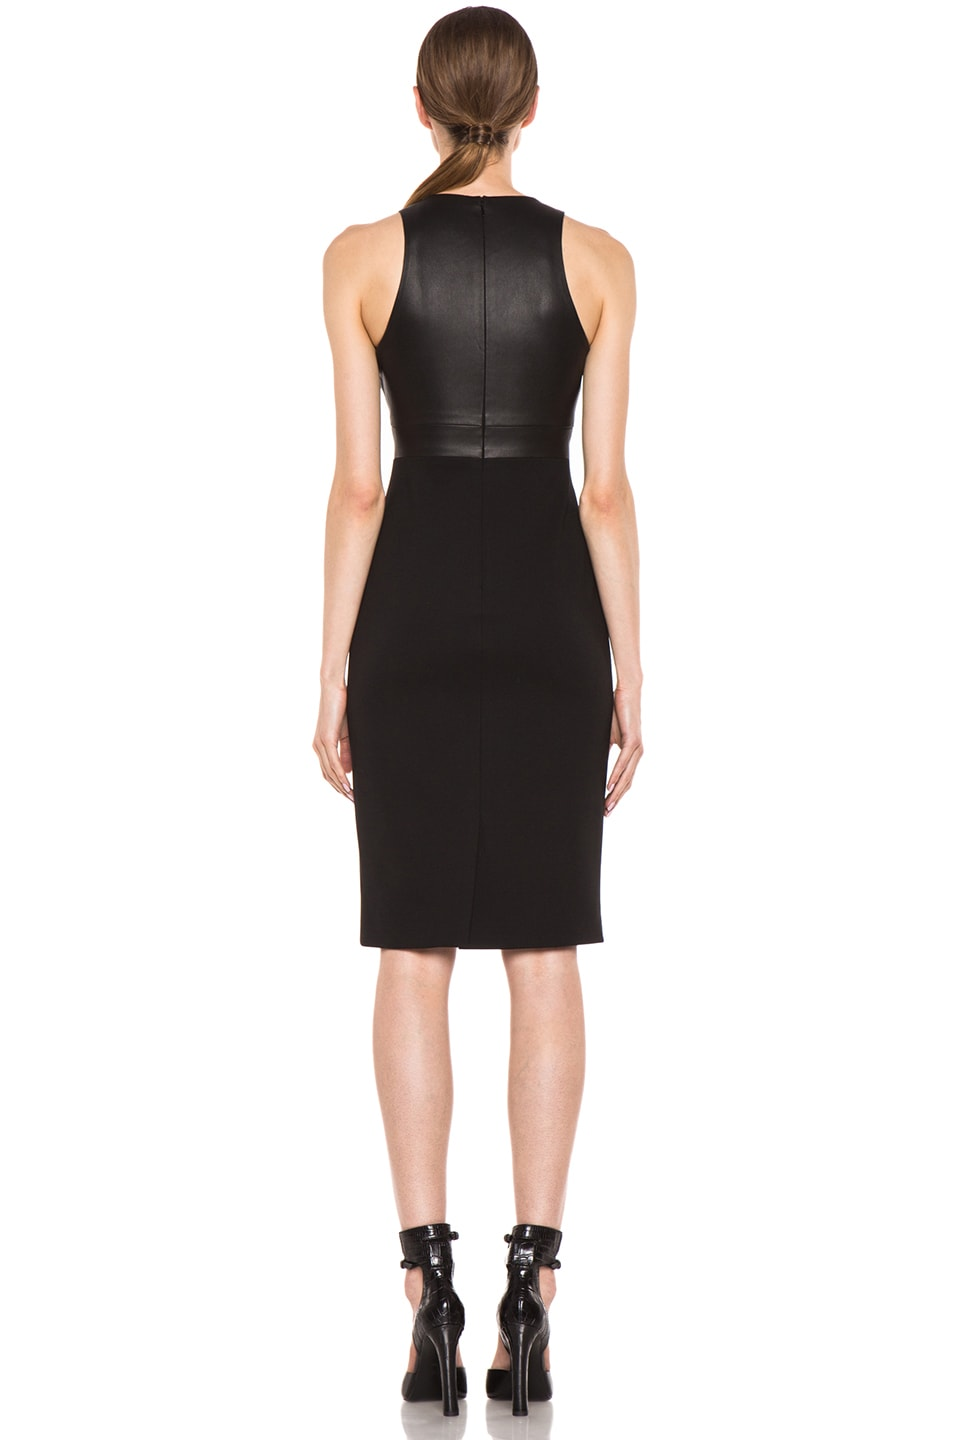 Image 4 of Cushnie et Ochs Michelle Ochs Dress in Black